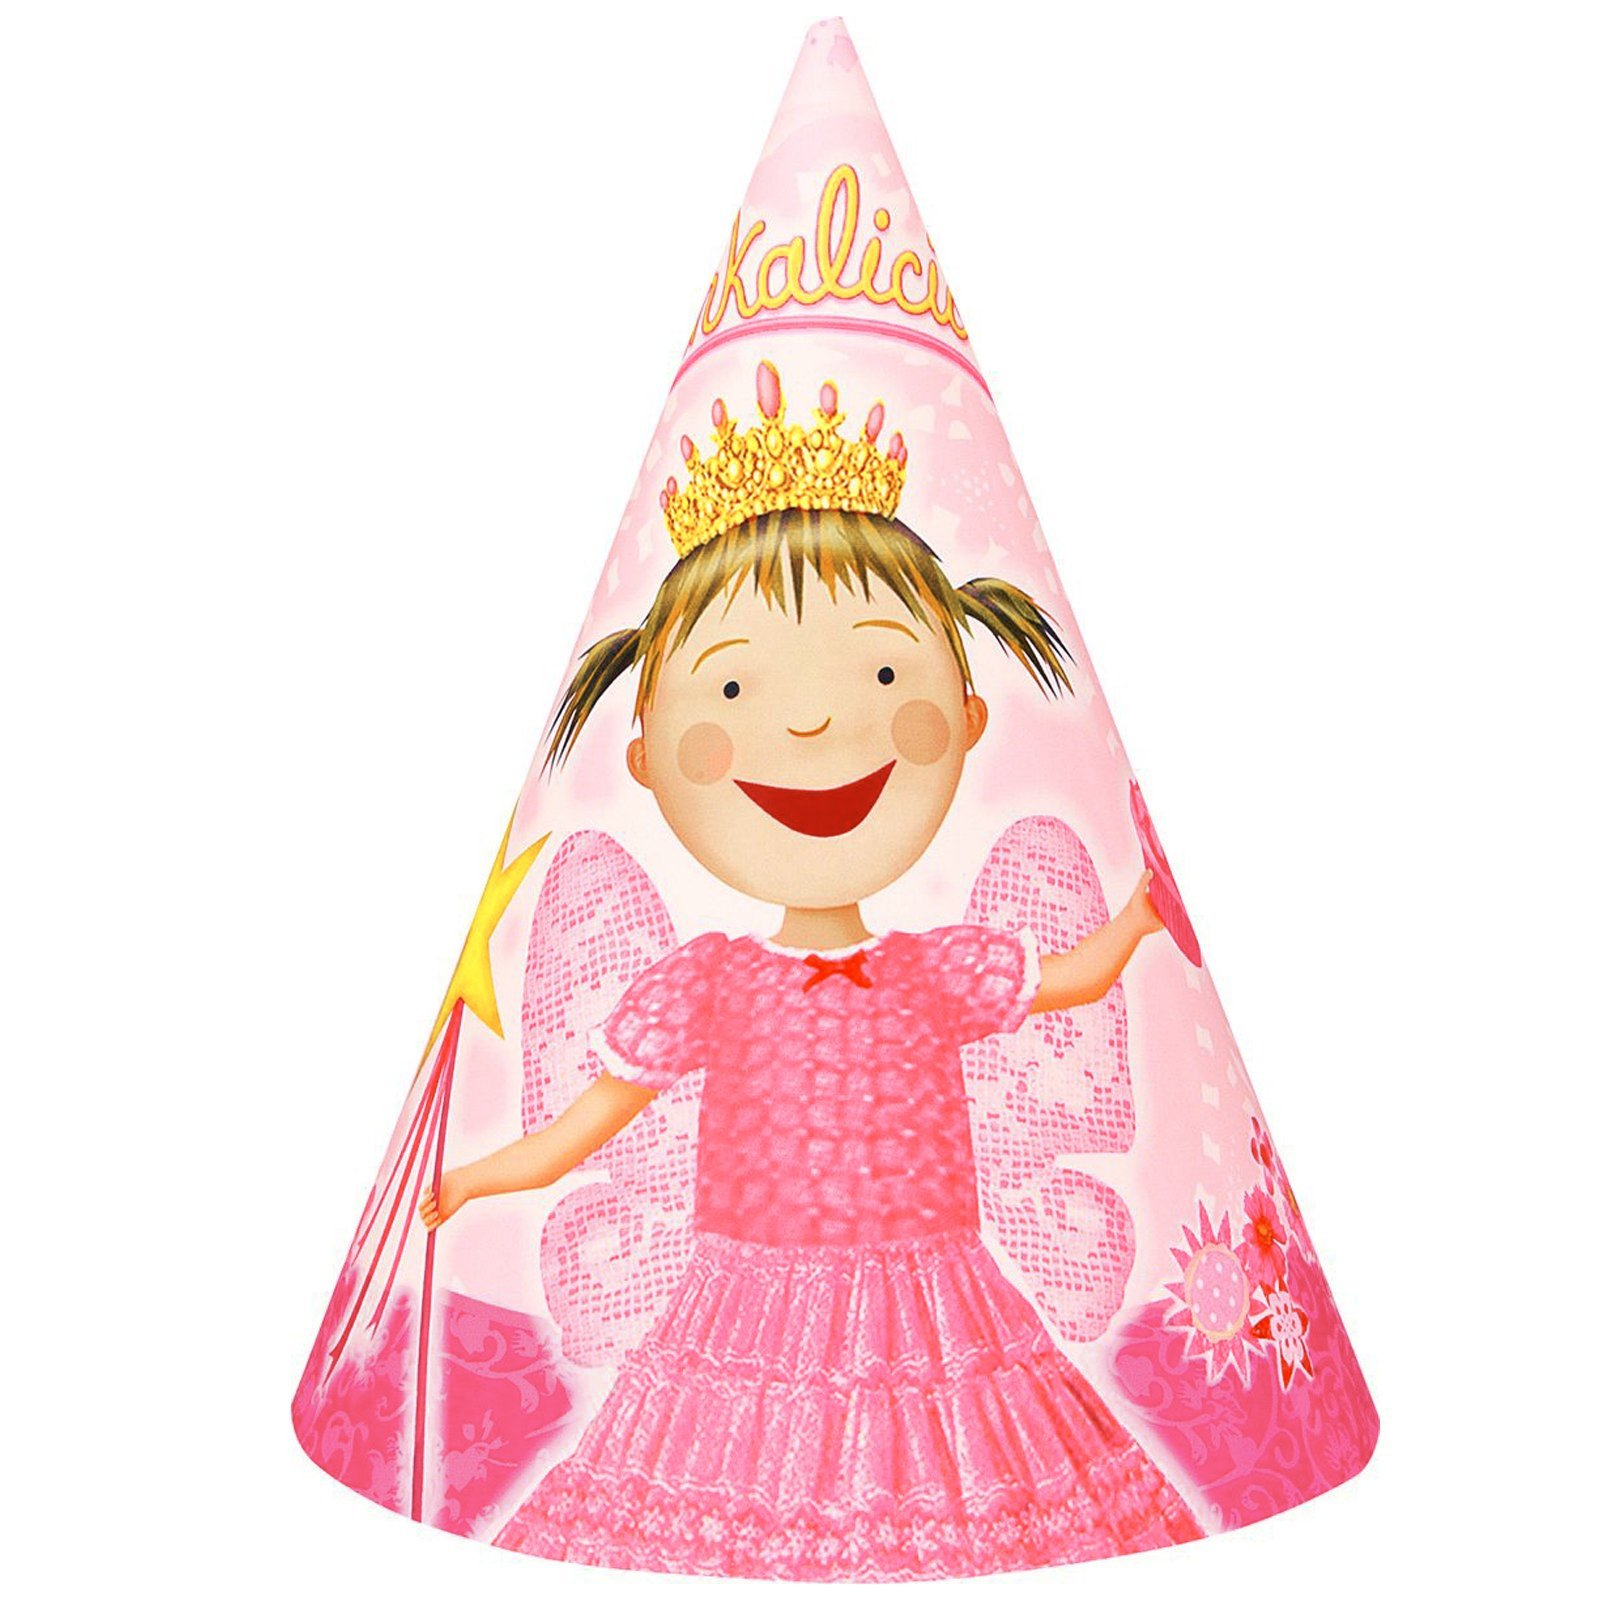 Pinkilicious Cone Hats (8 count)